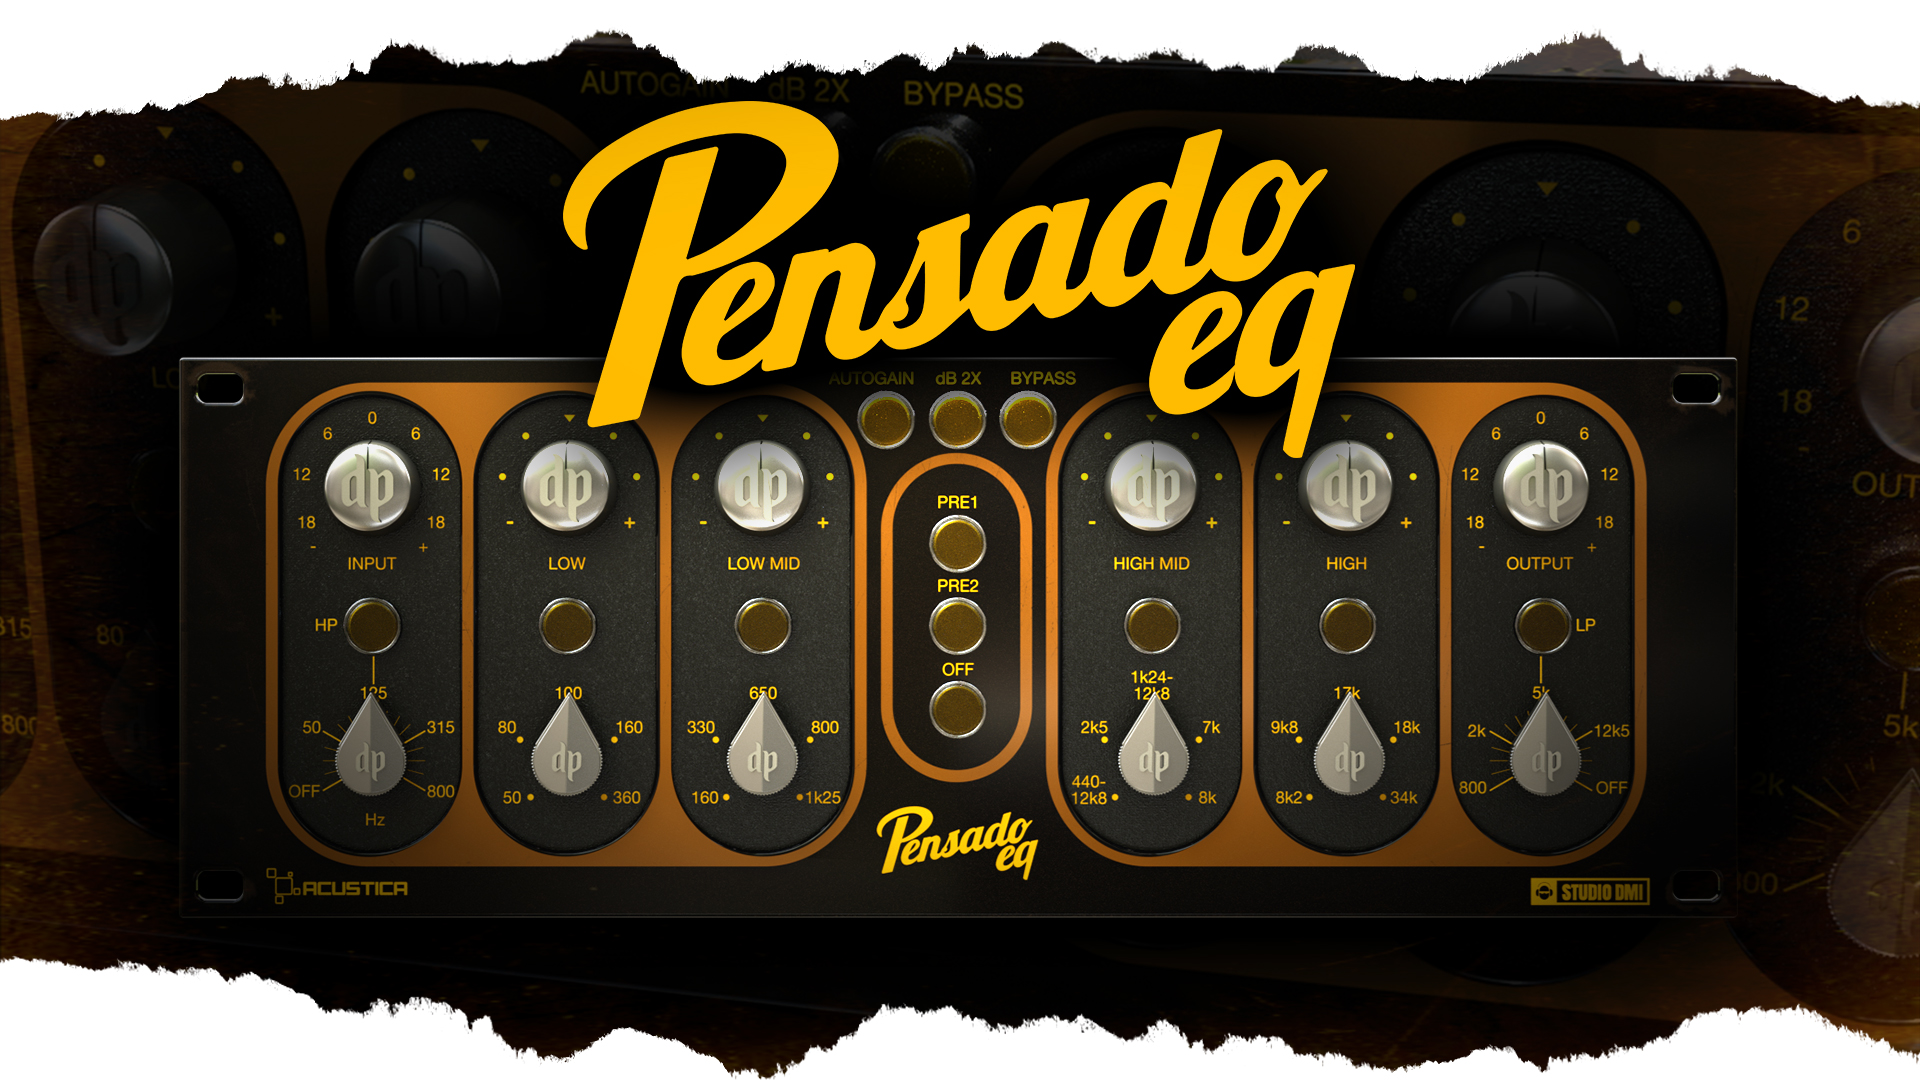 Introducing Pensado EQ